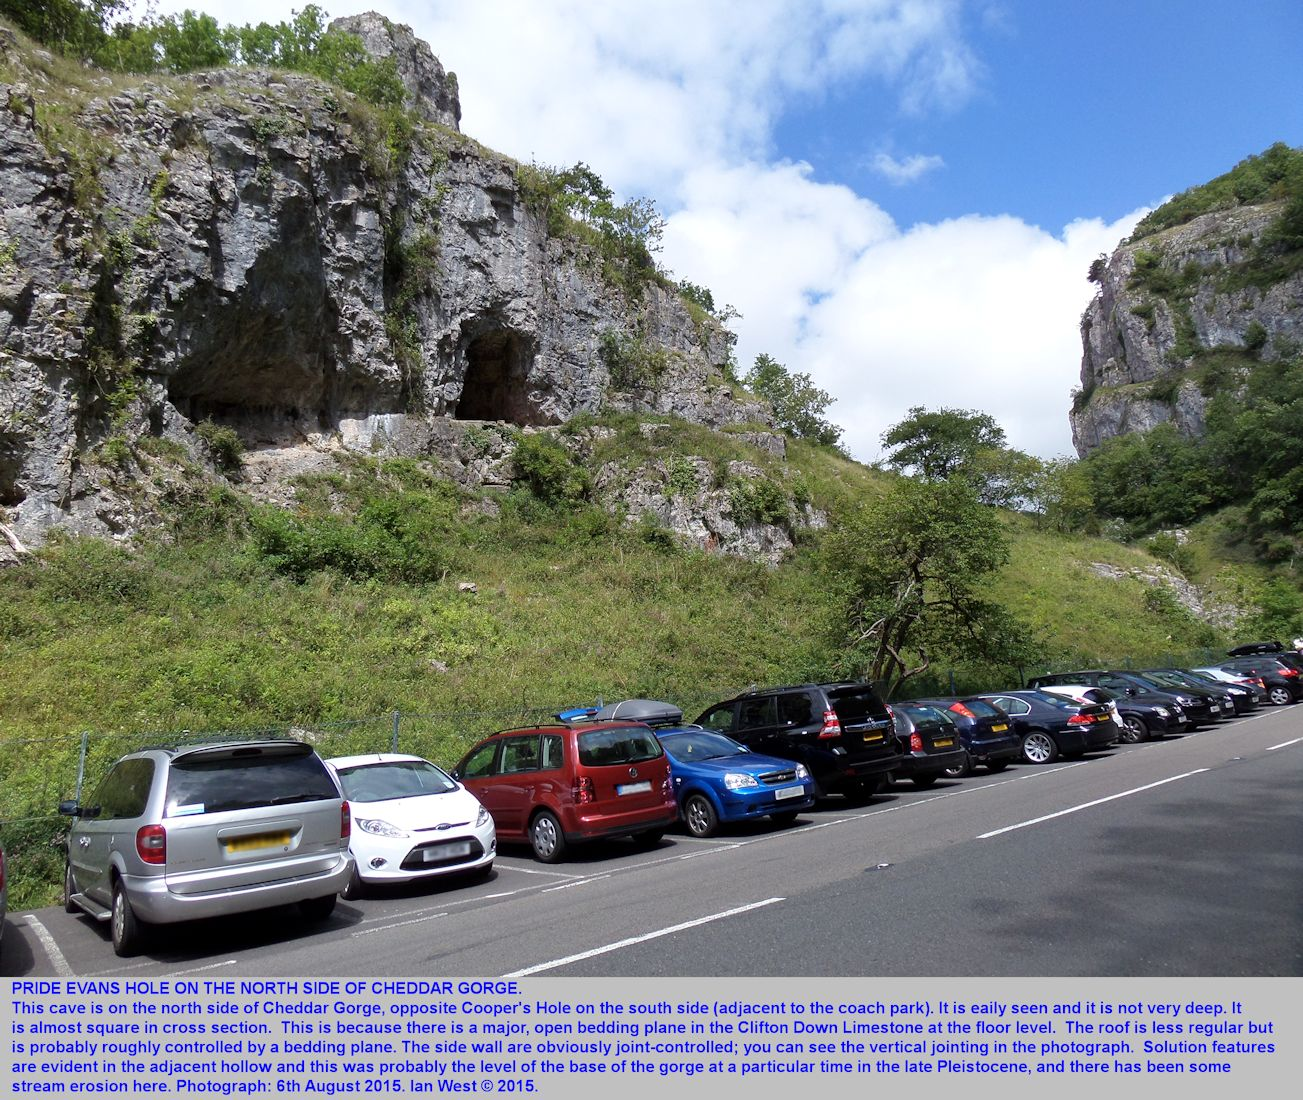 A view of Pride Evans' Hole, a short cave in Cheddar Gorge, Mendip Hills, Somerset, 6th August 2015